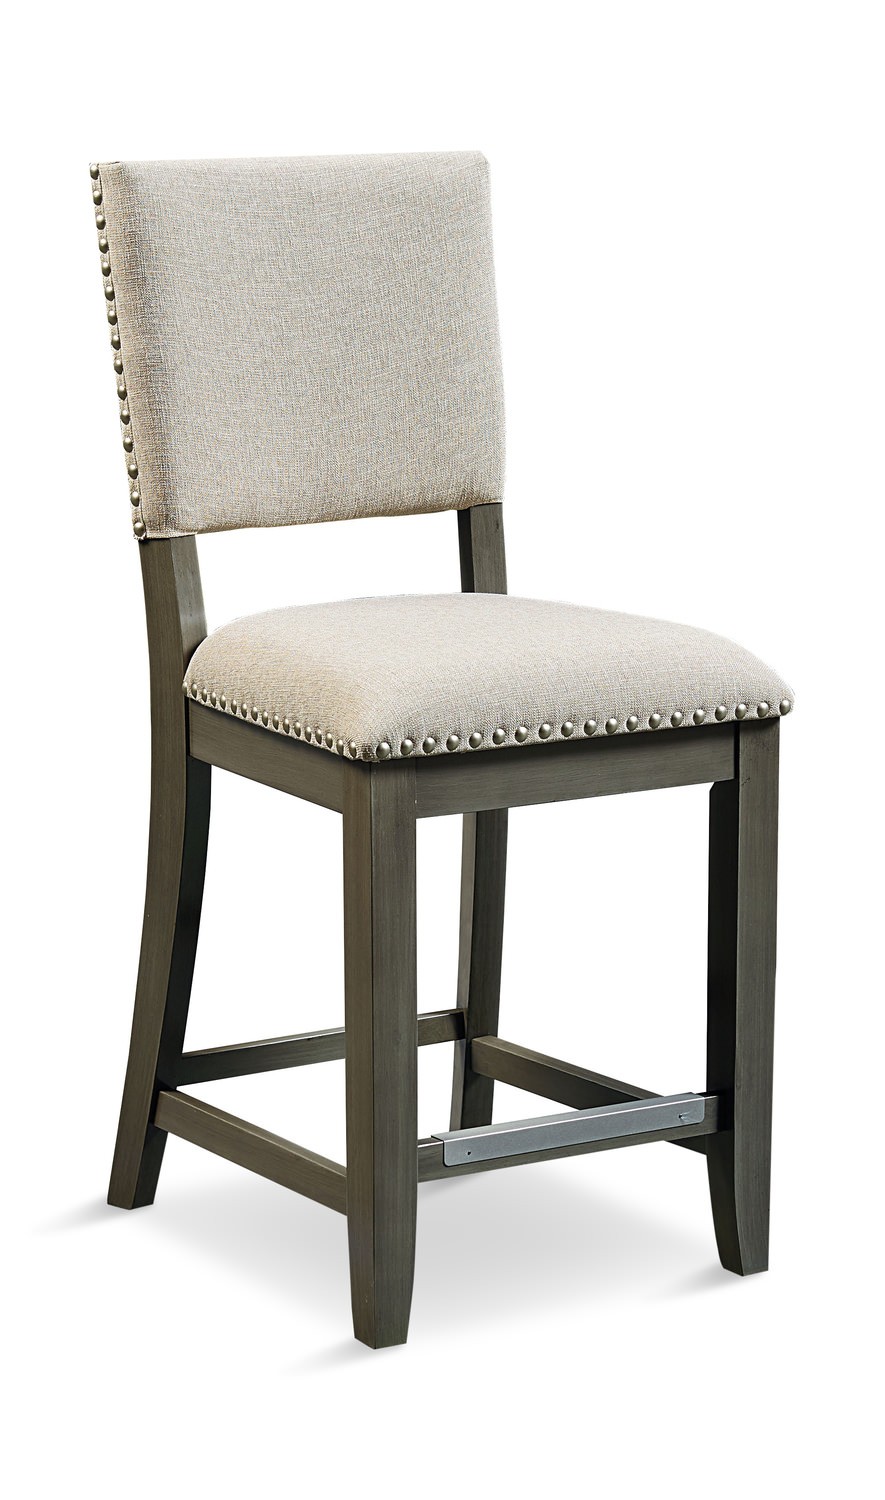 Omaha upholstered counter stool